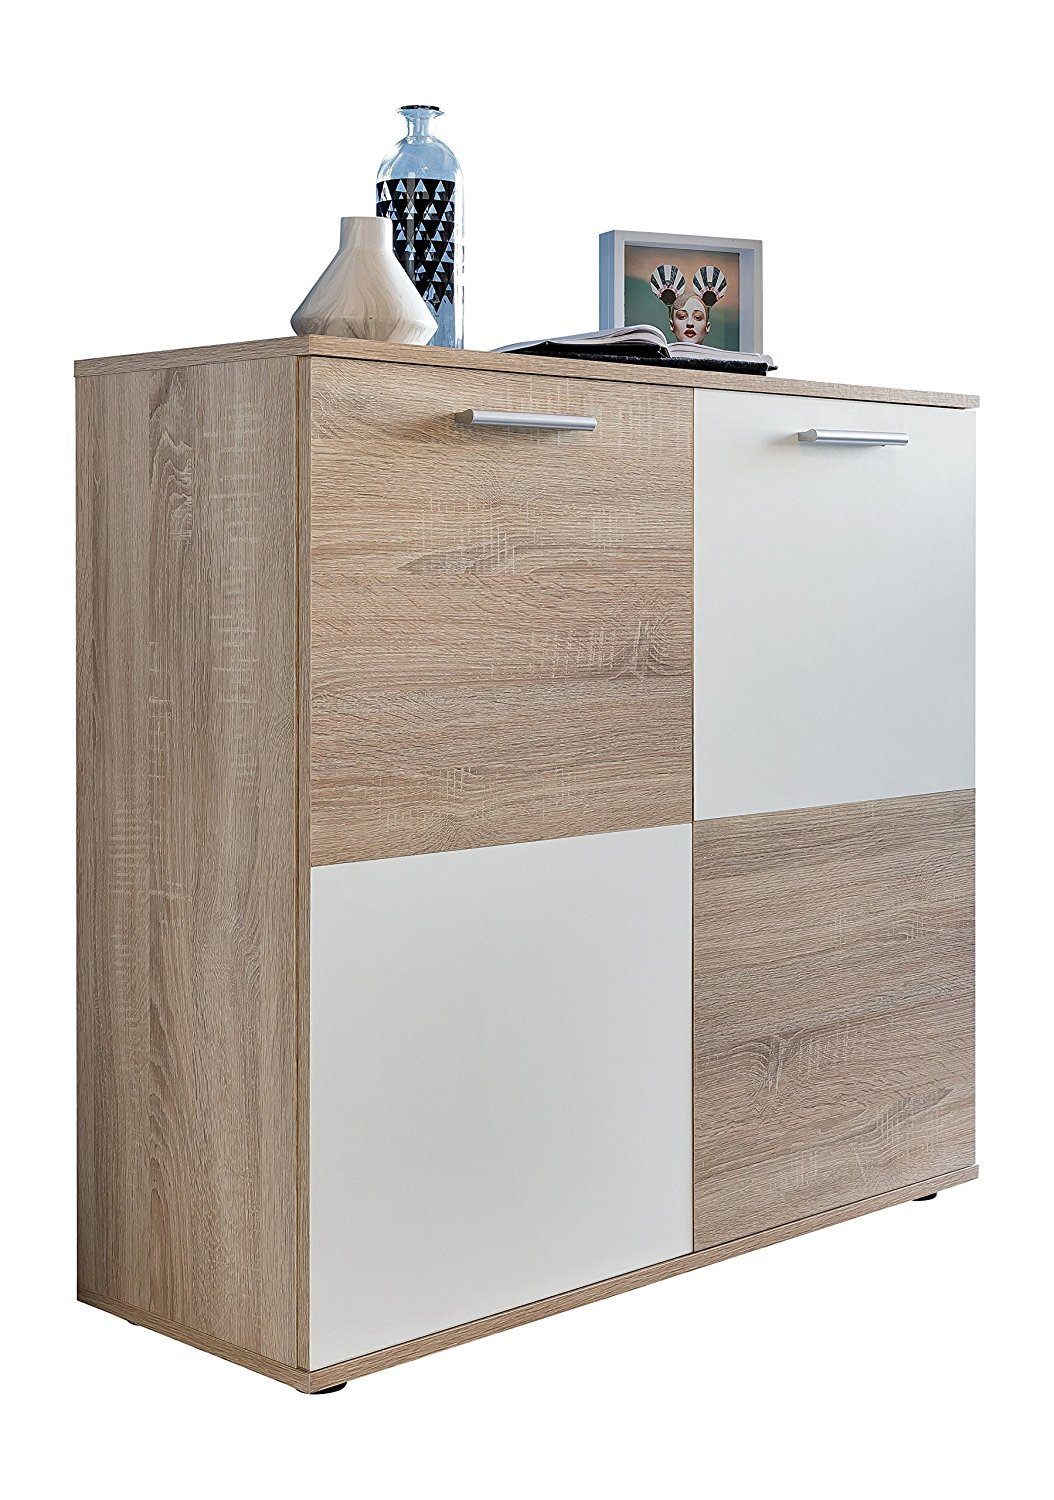 Kommode Compare Eiche Sagerau Hell Weiss Sideboard Lowboard Highboard